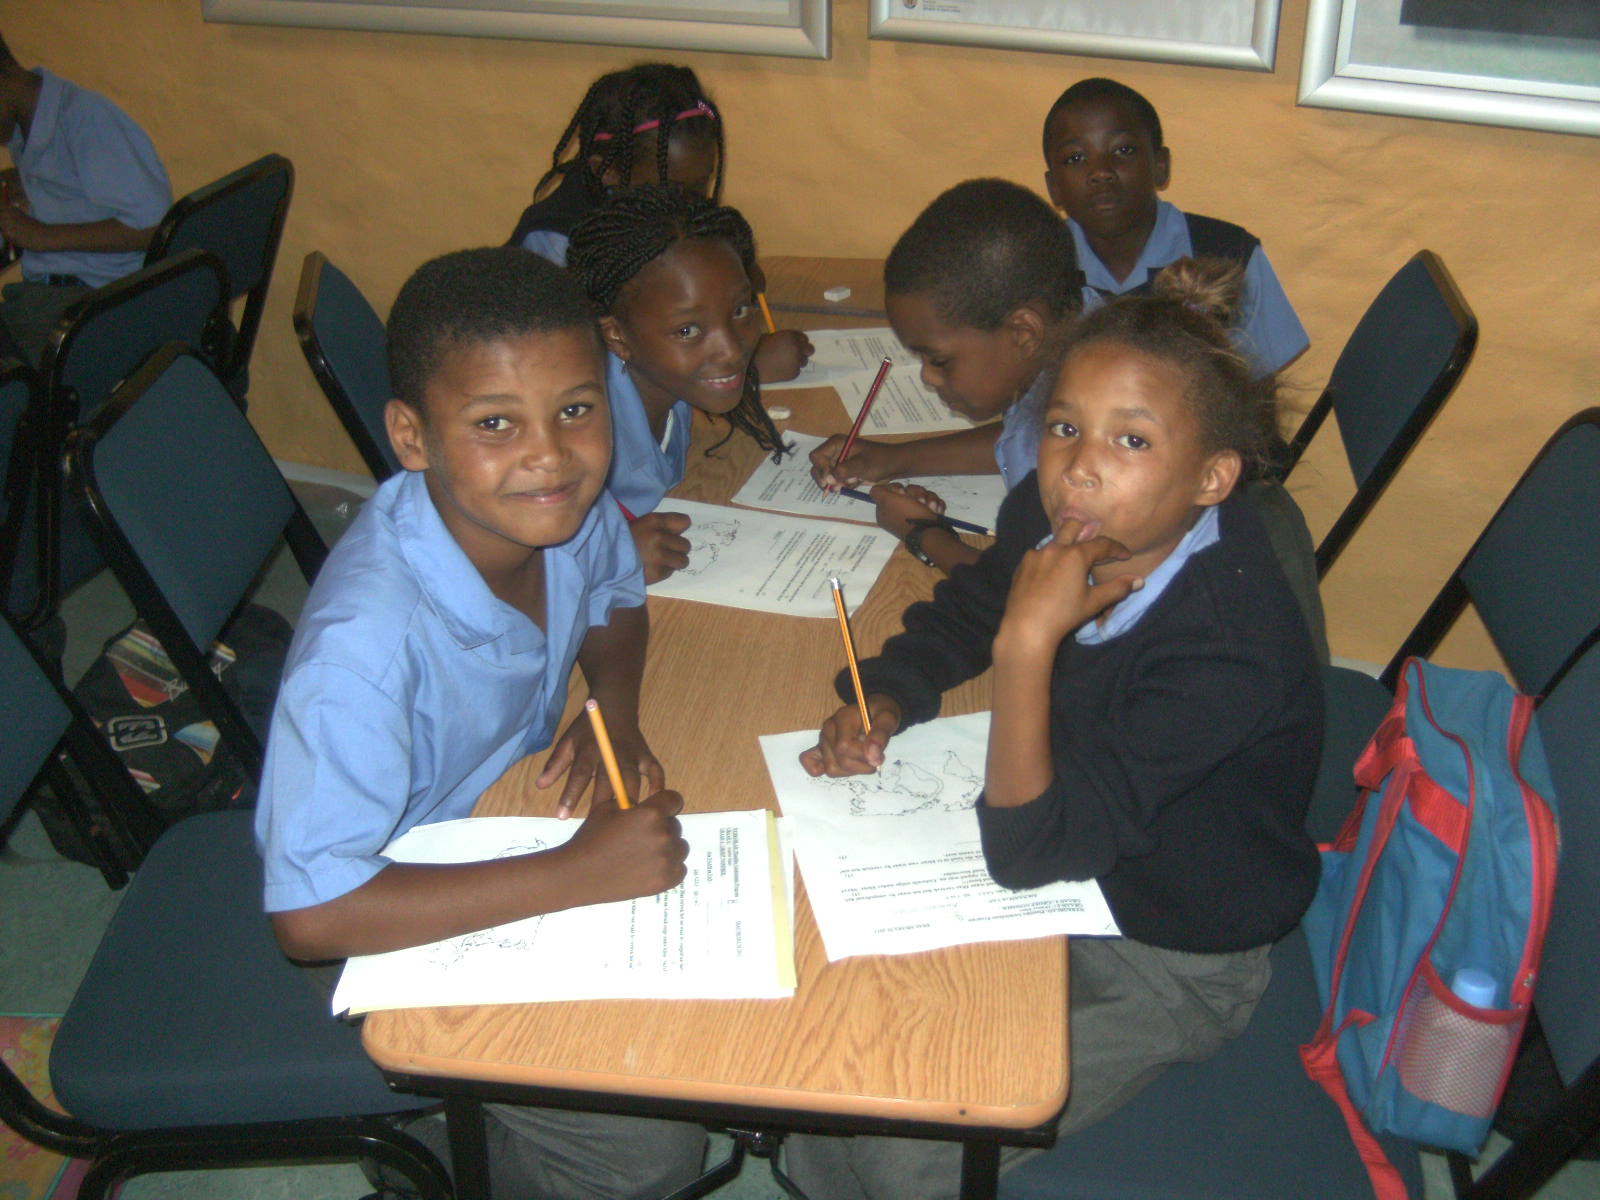 Learners completing their worksheets for the National Symbos DCAS Museum Educational Programme